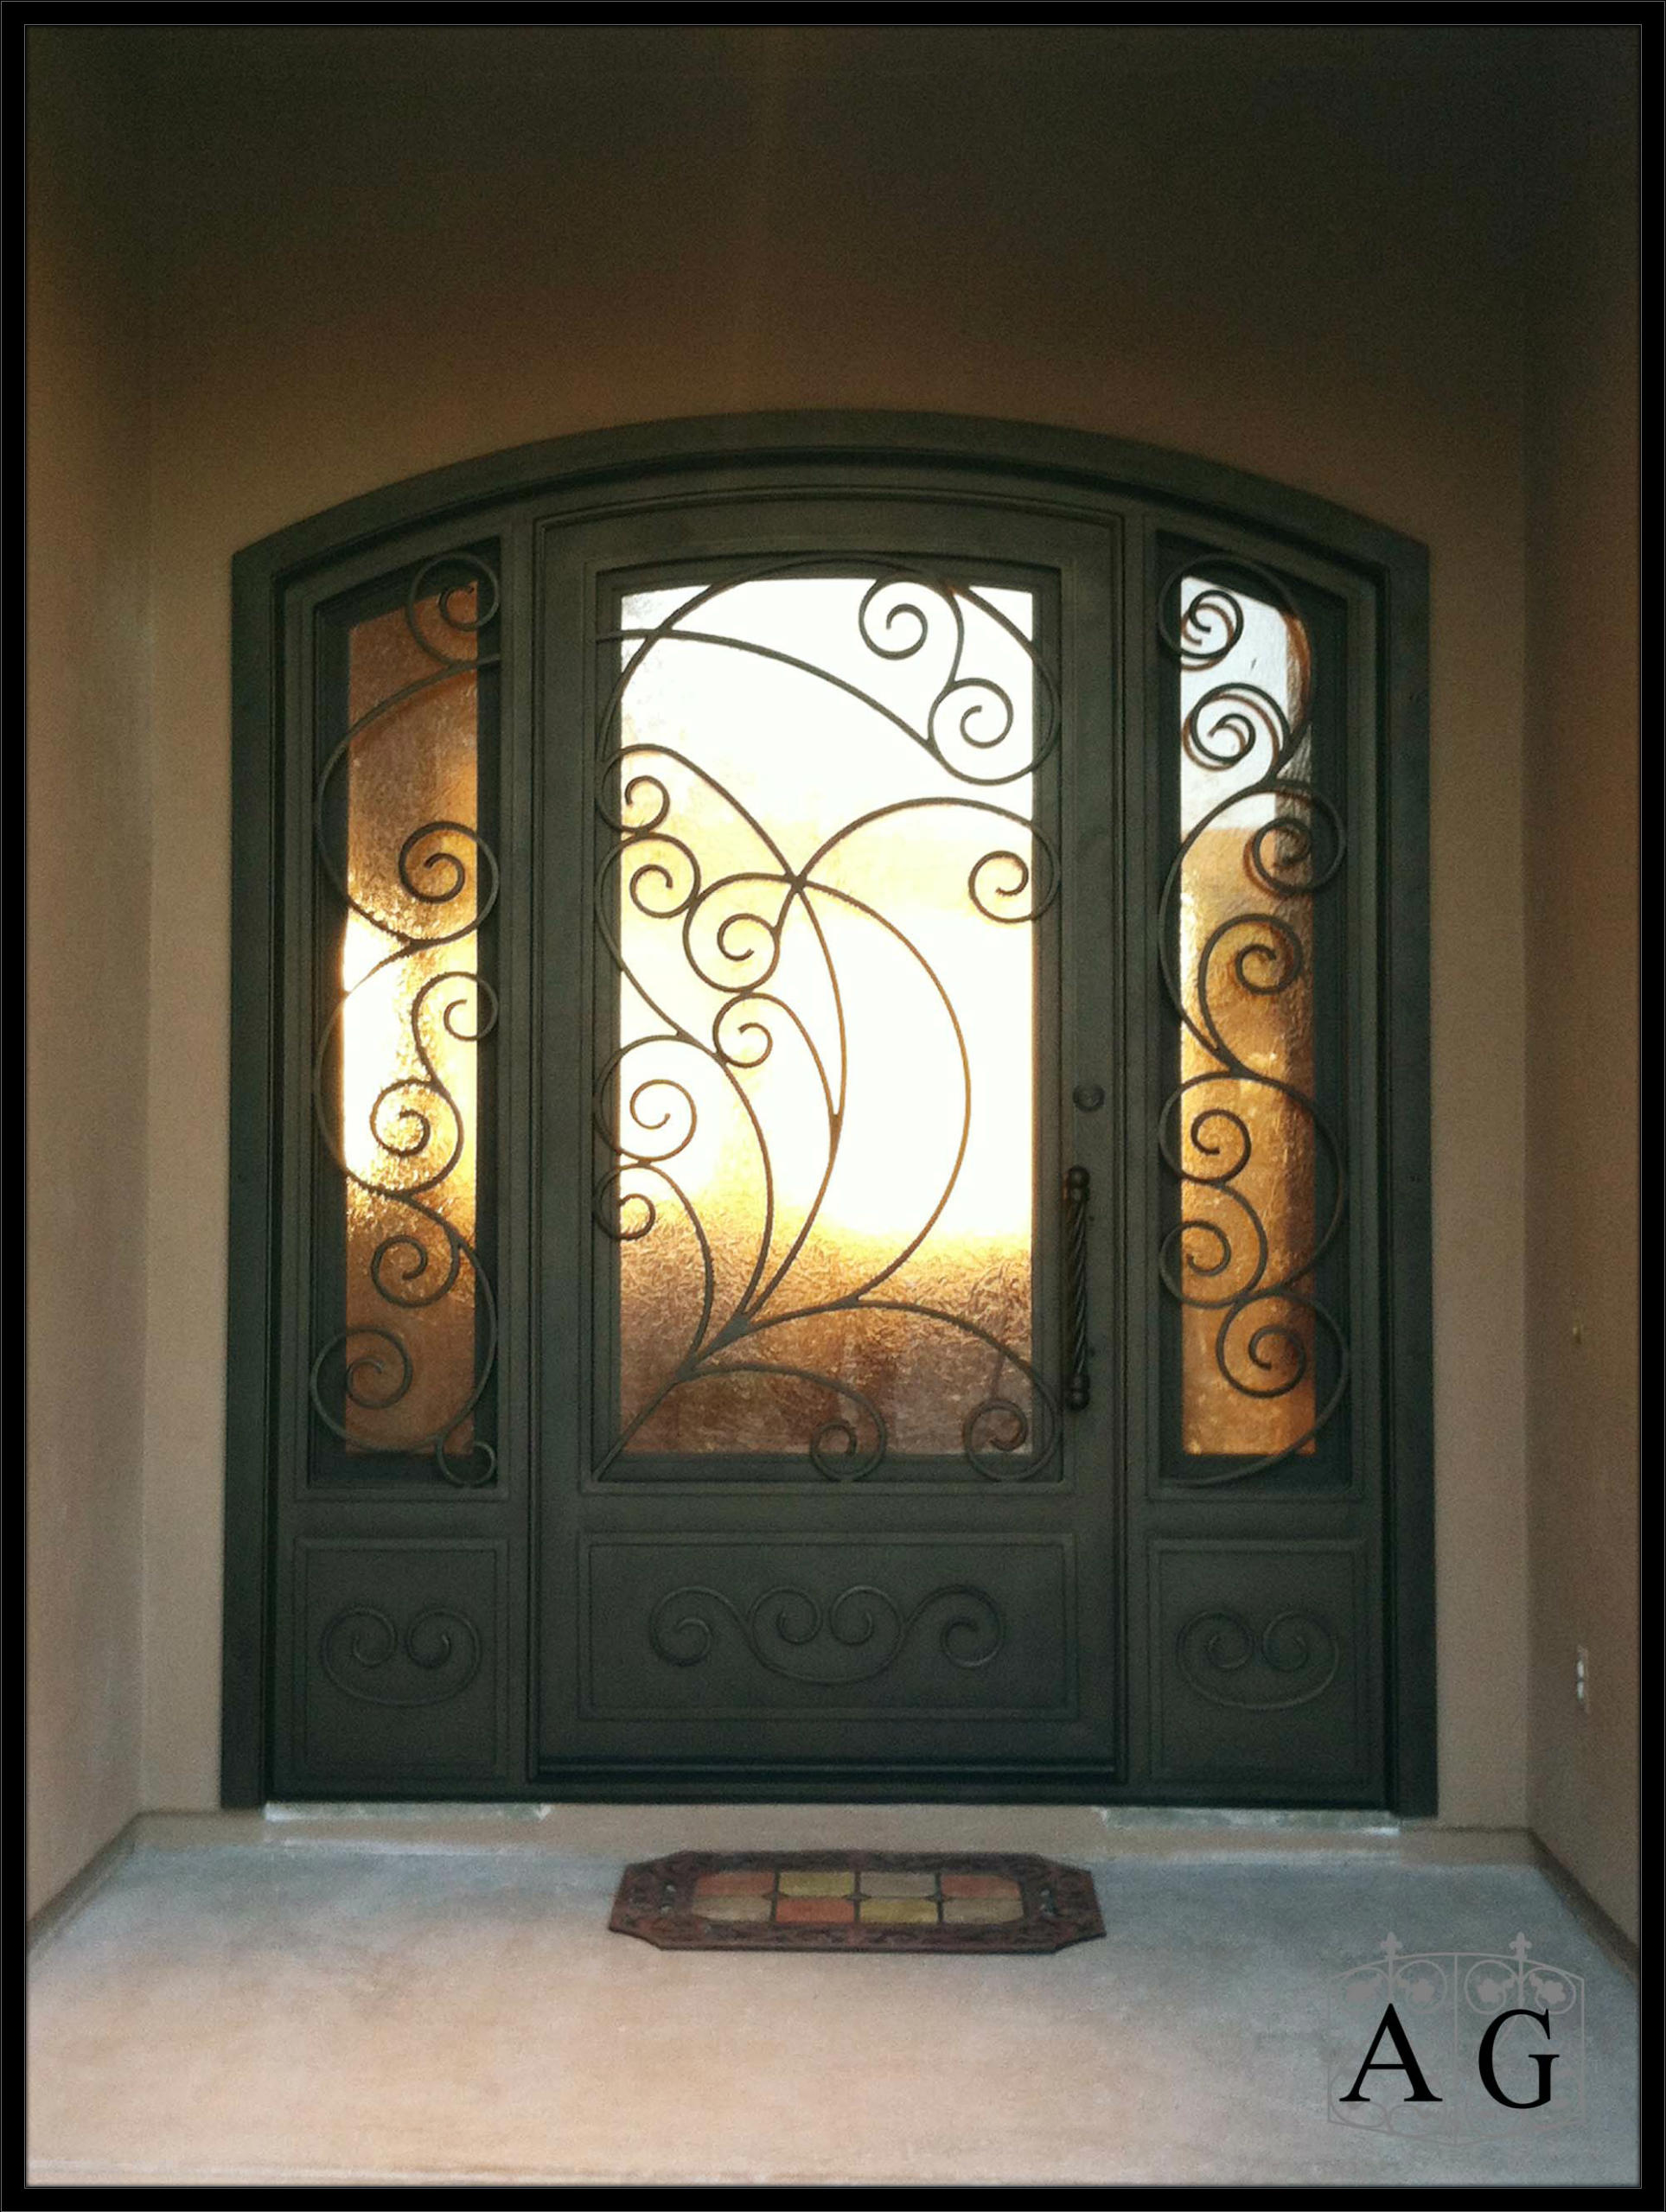 Frosted glass front door - Agc_ge_sarida 3